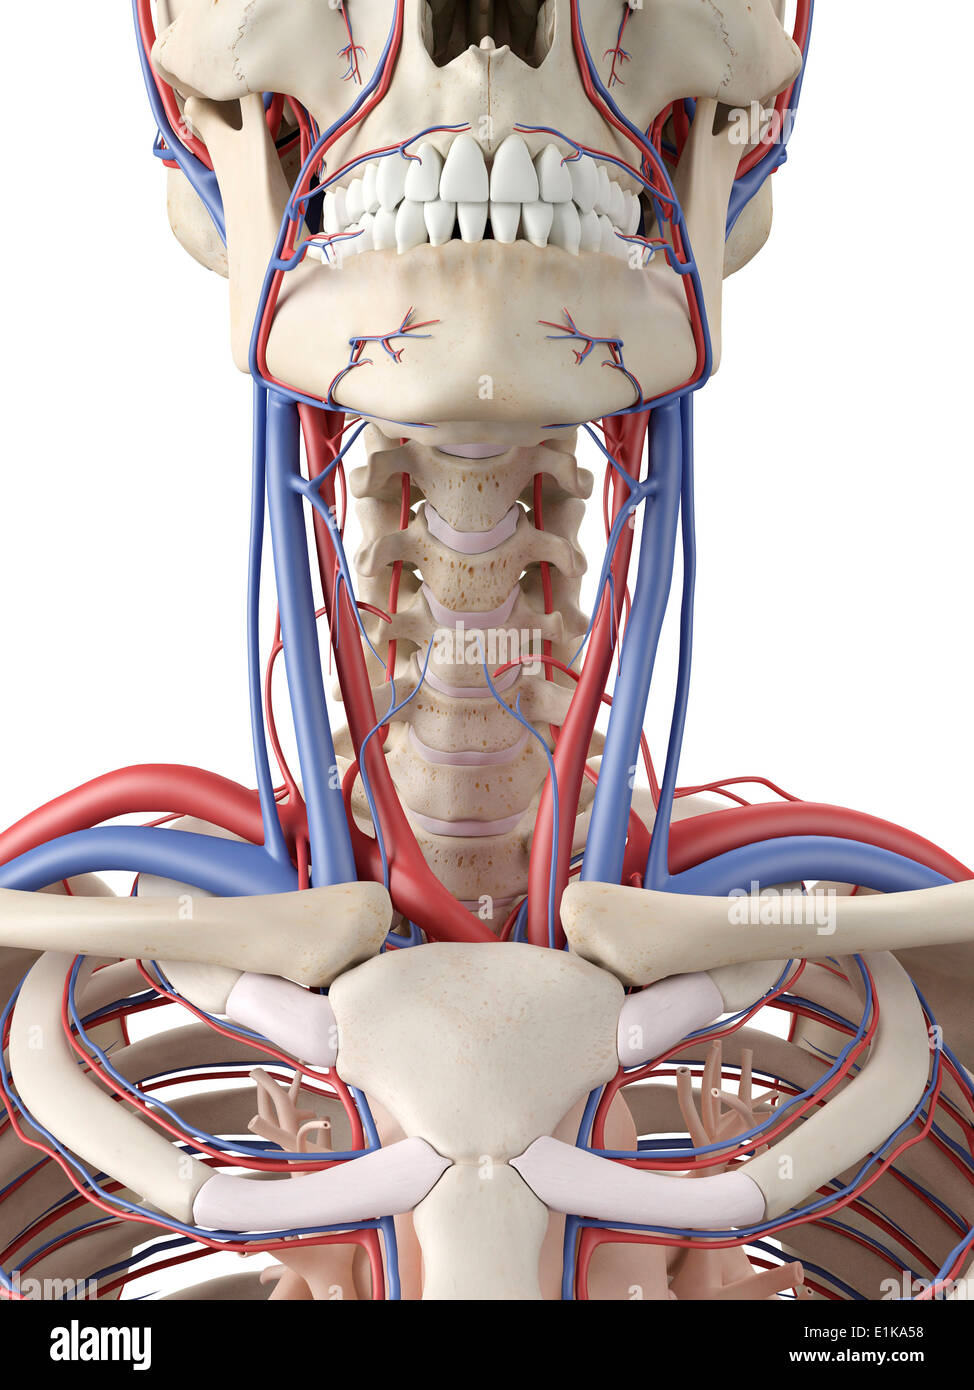 Vascular system of neck and throat computer artwork Stock Photo ...